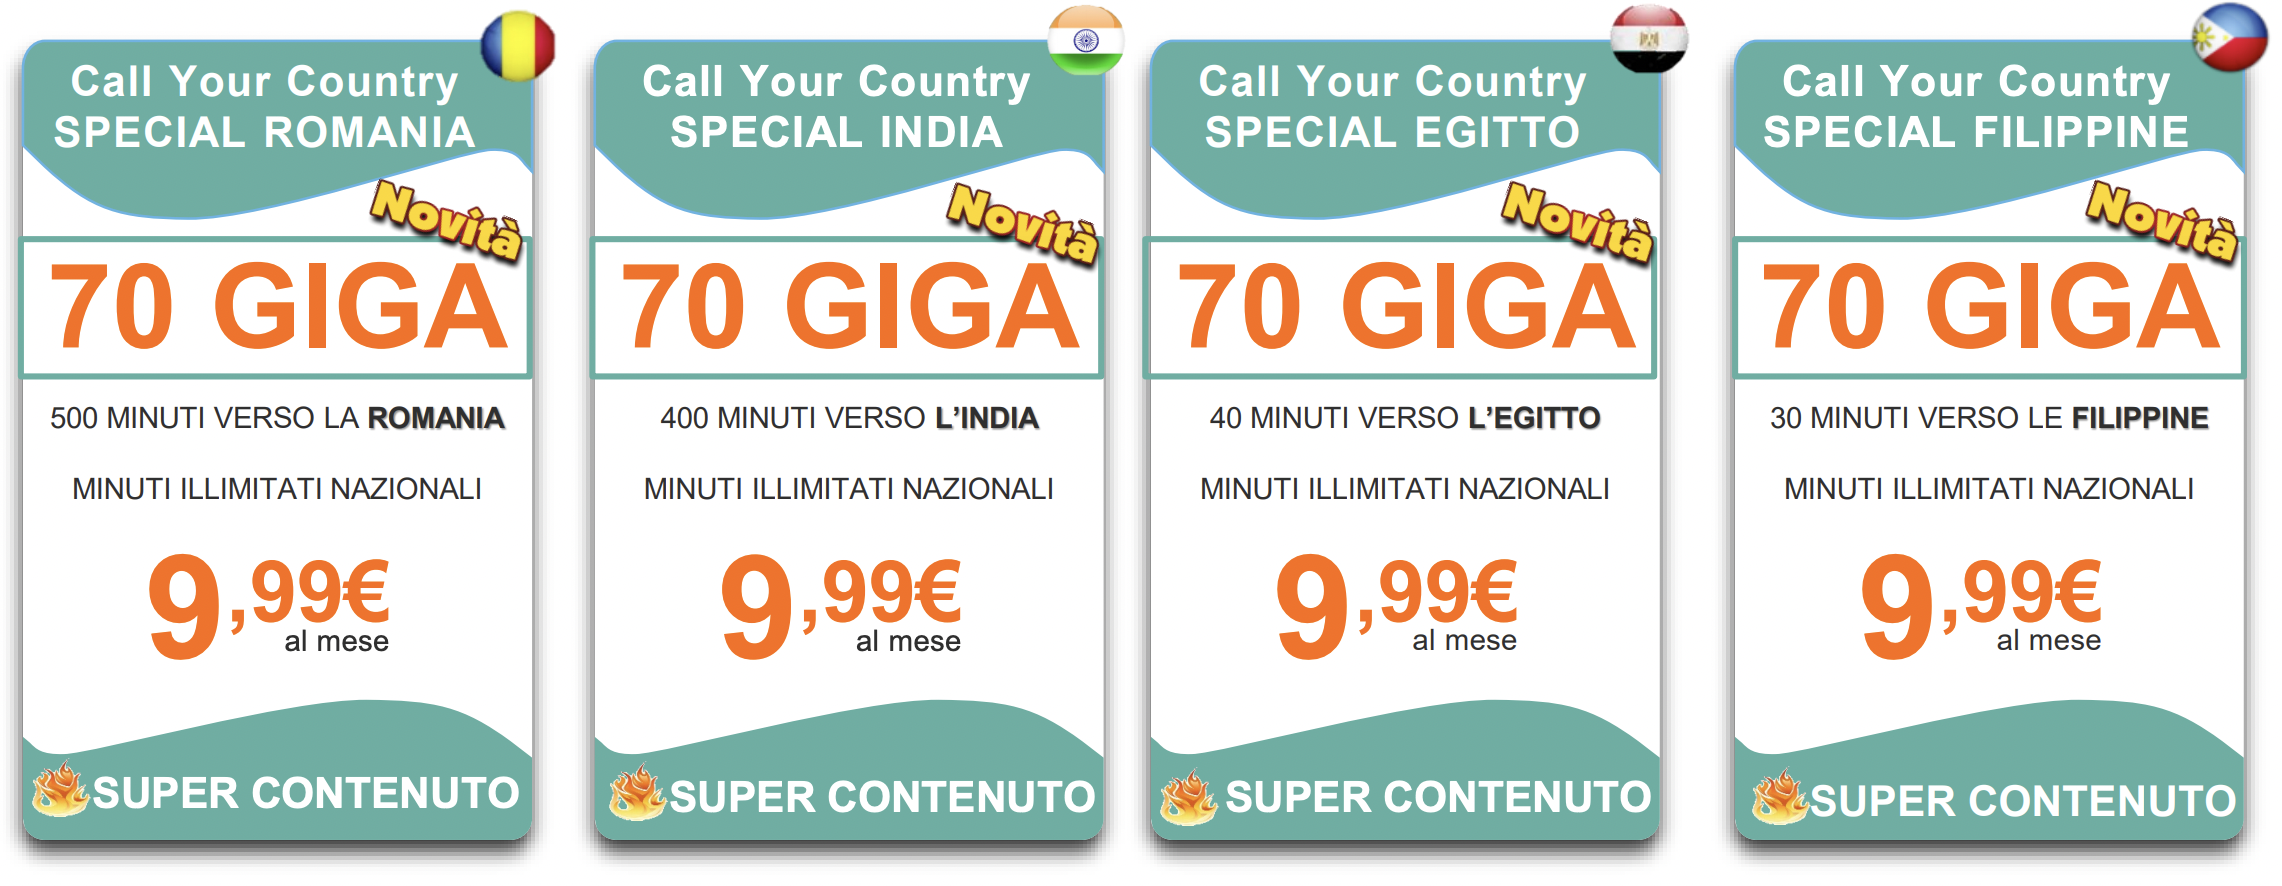 Call Your Country Special